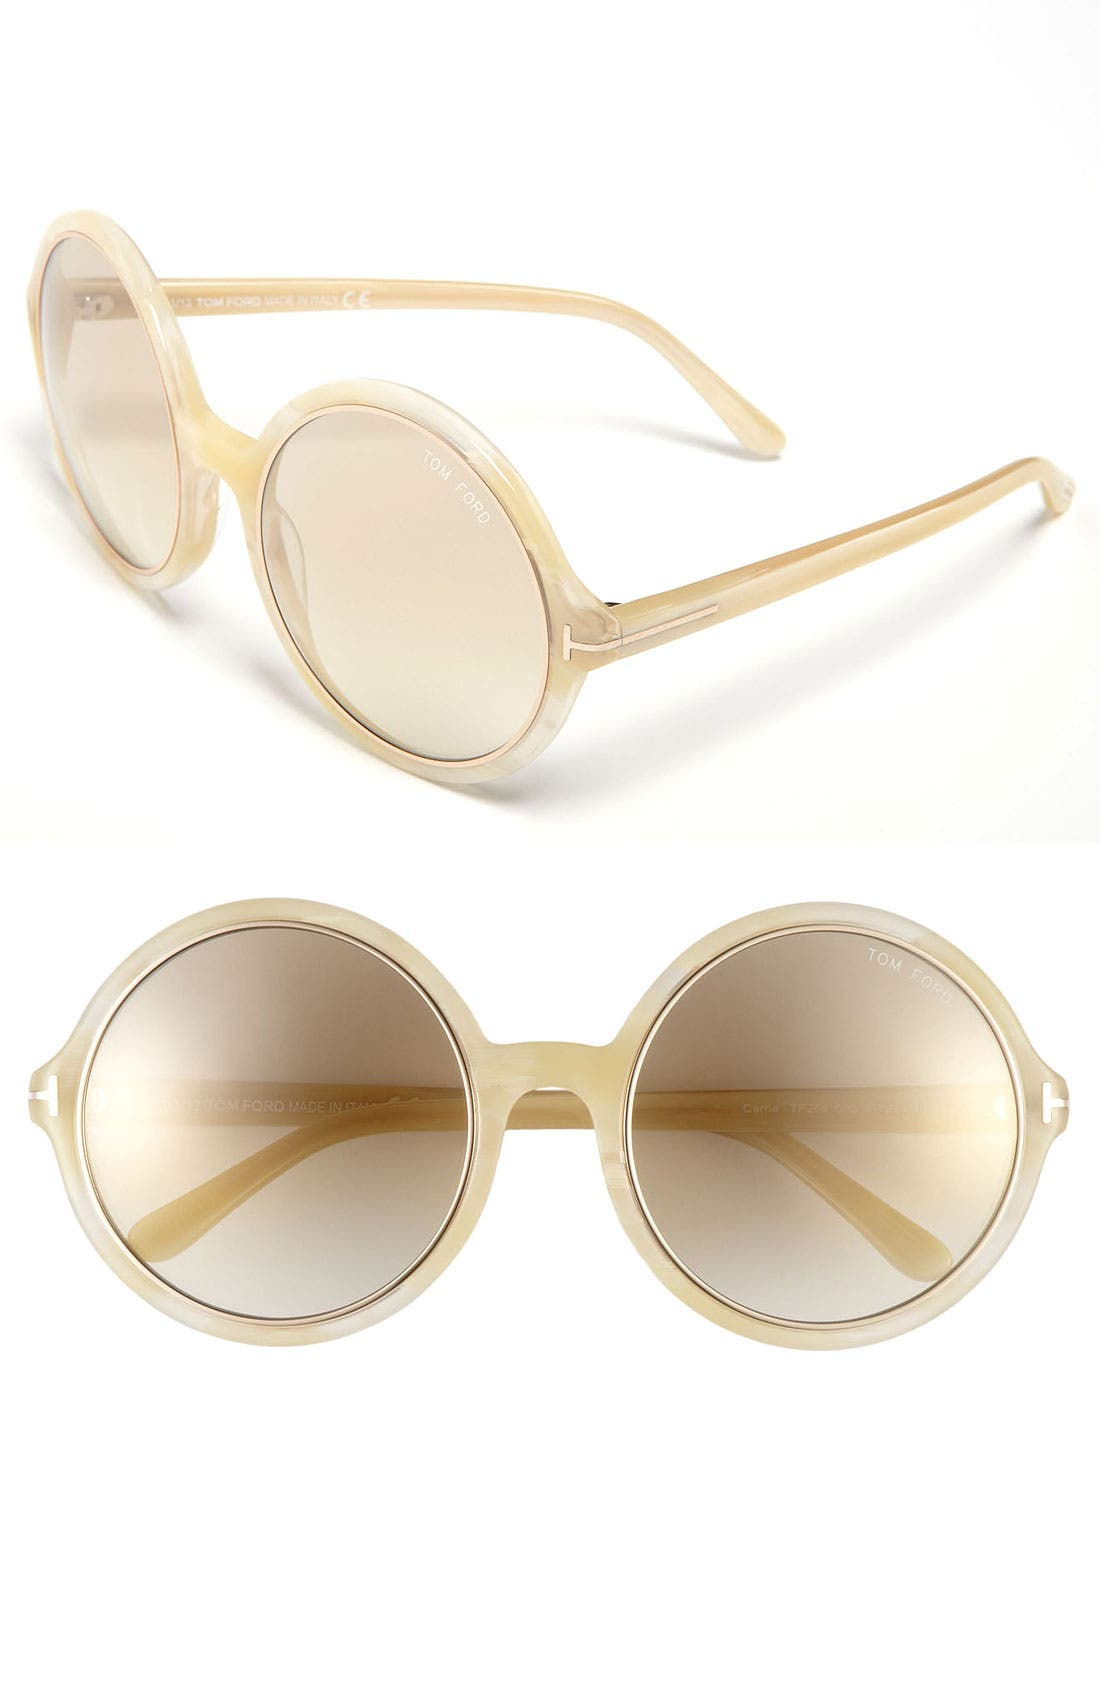 Alternate Image 1 Selected - Tom Ford 'Carrie' 59mm Round Sunglasses